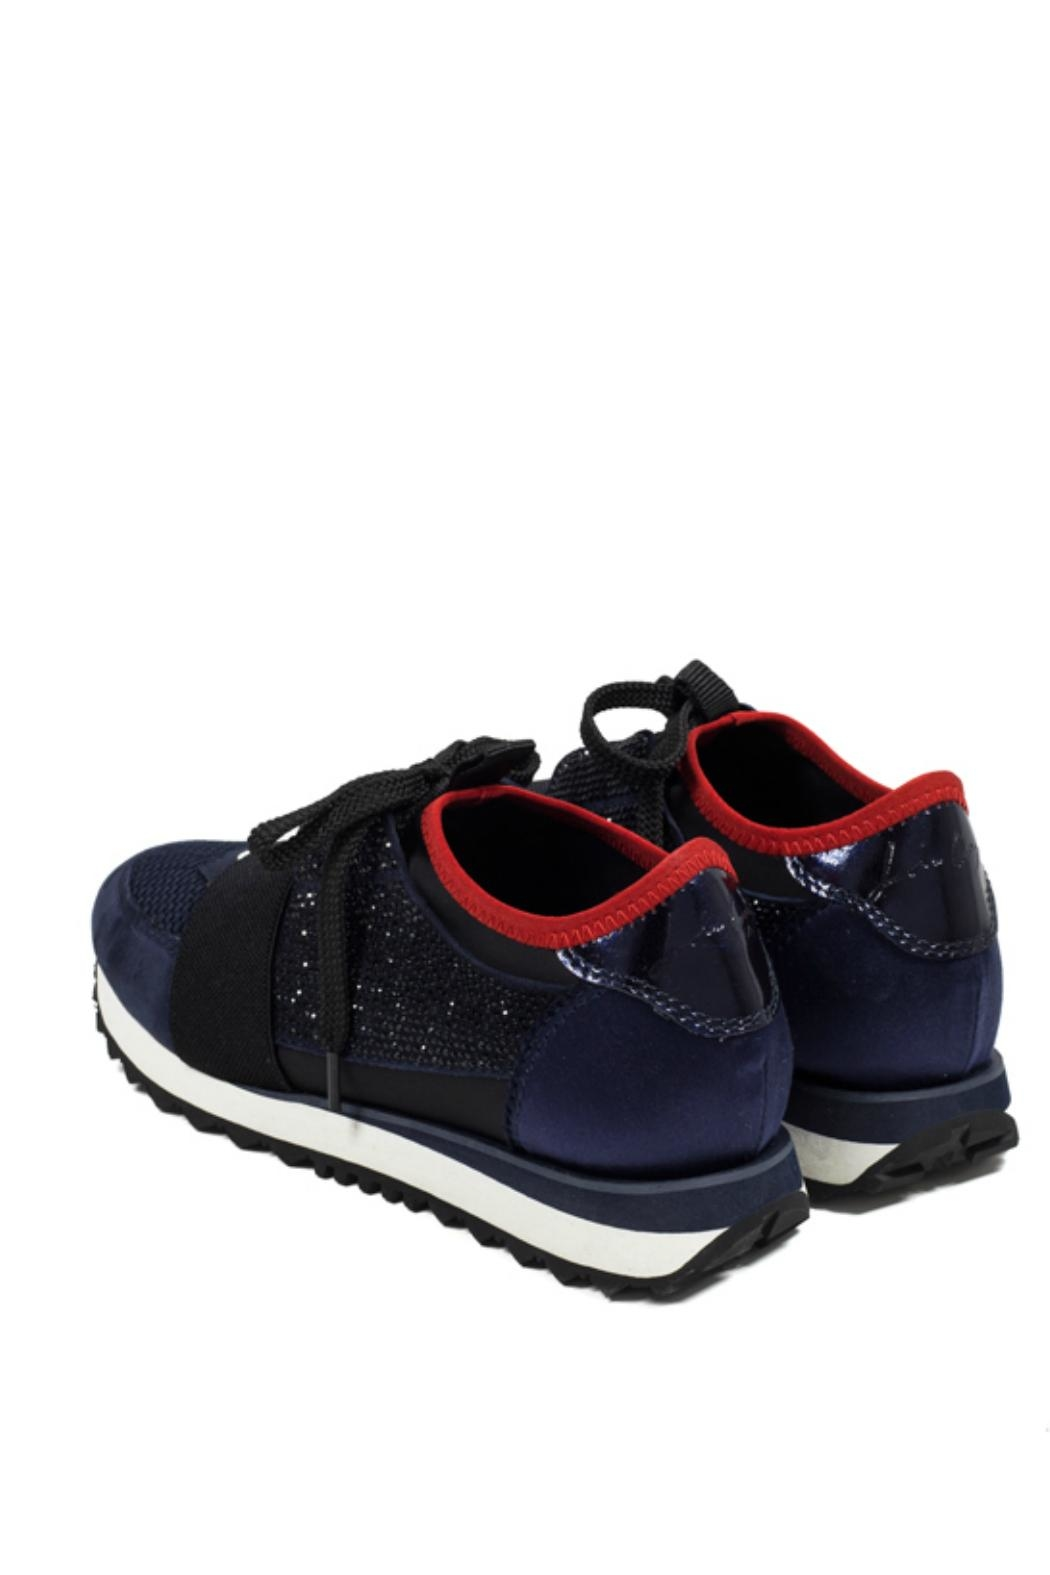 quality design e193a 96139 Lola Cruz Suede Marine Sneaker from New Hampshire by ...